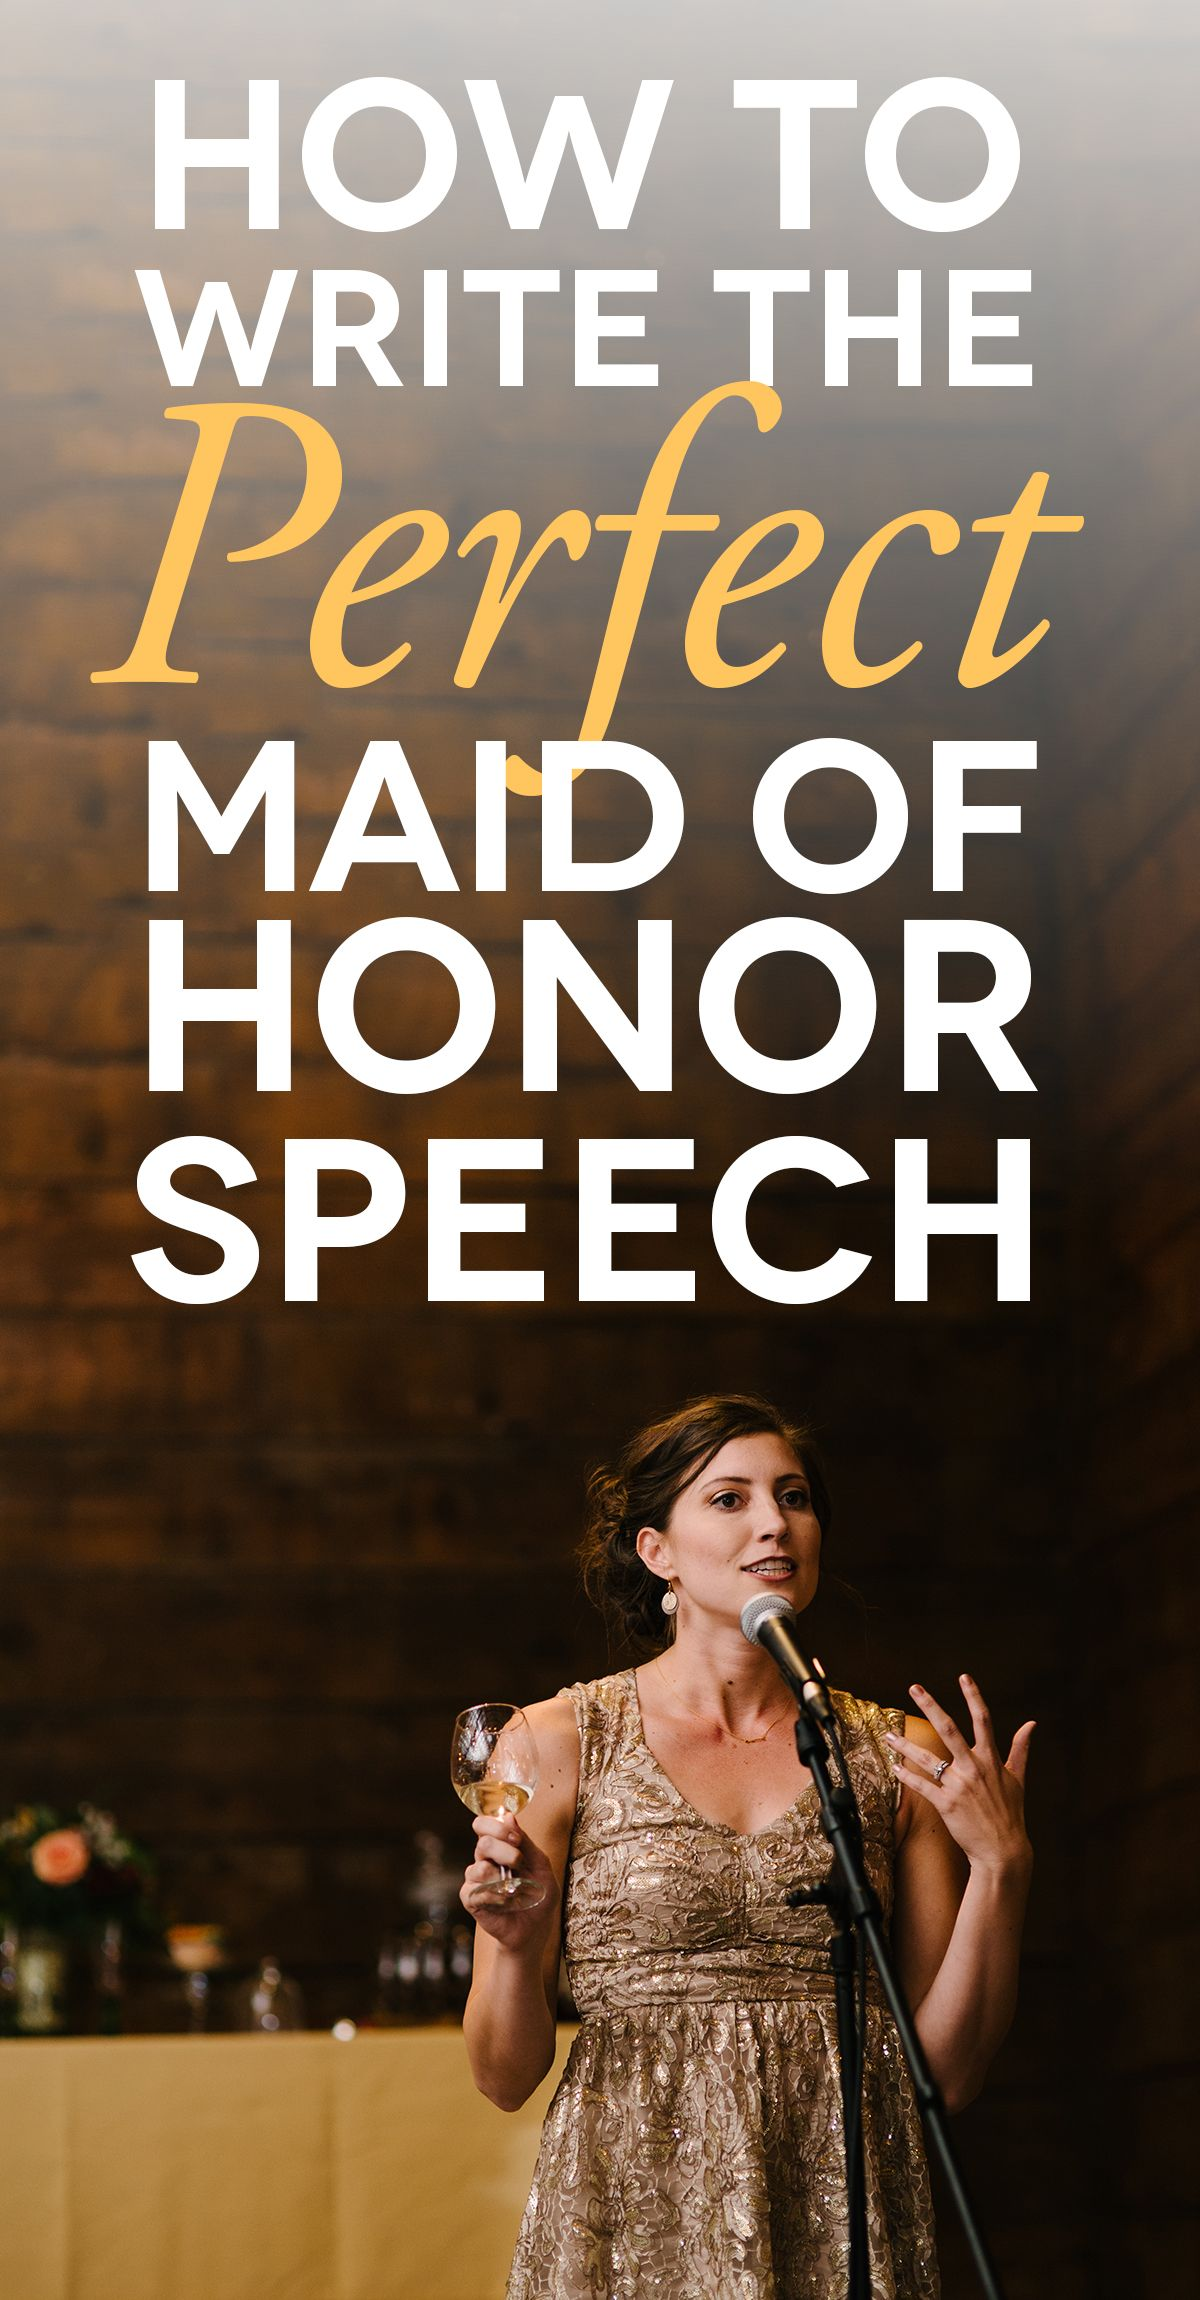 how to write the perfect speech Write don't get bogged down by the formalities of writing just write your speech in your own voice, which means you should write it in the same way you would normally talk just write your speech in your own voice, which means you should write it in the same way you would normally talk.